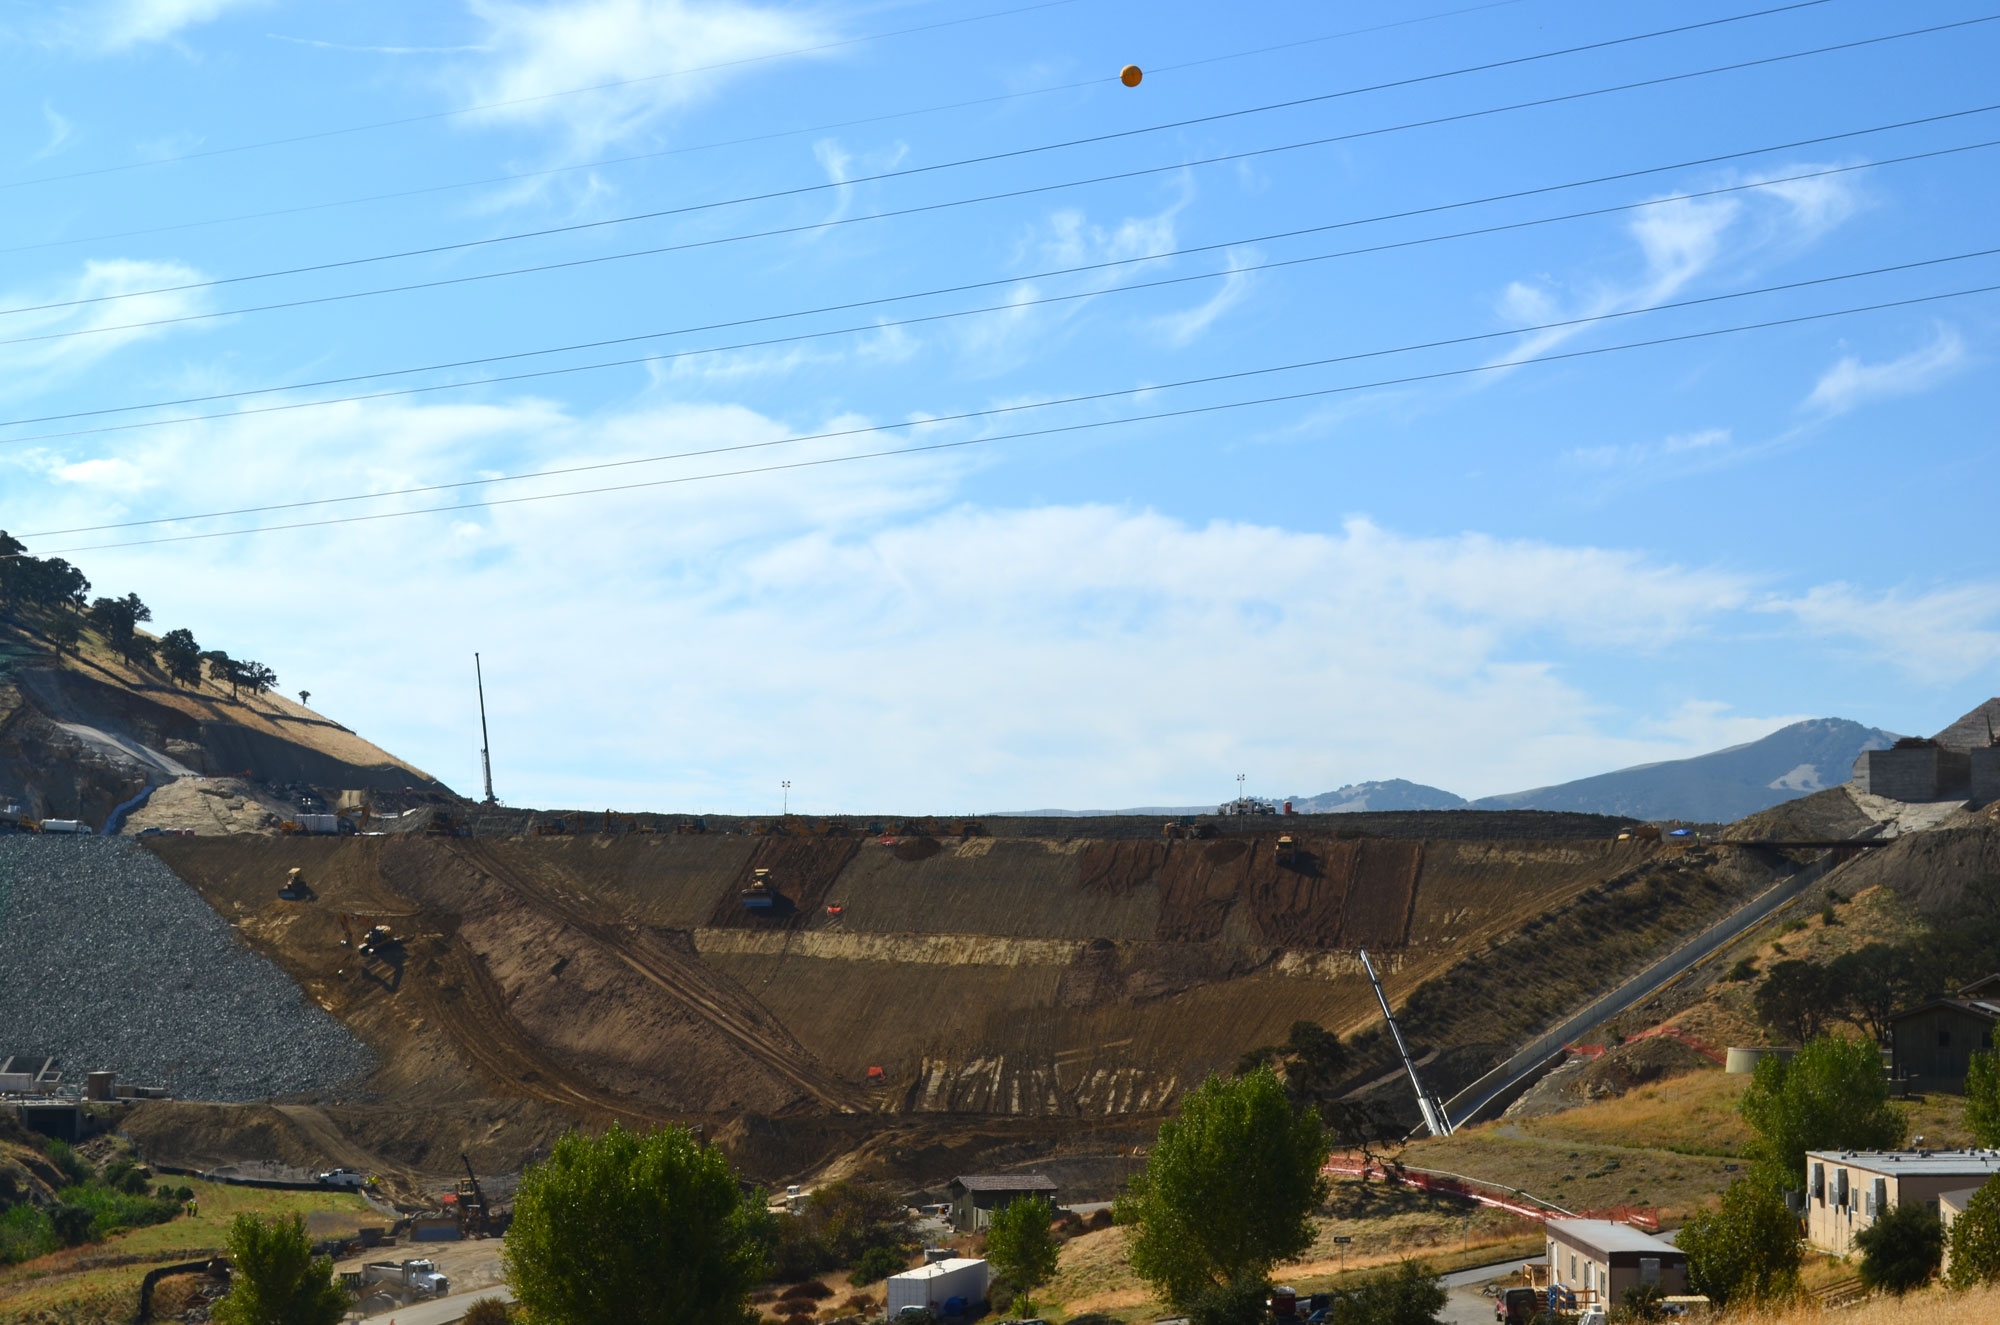 Los Vaqueros Reservoir Expansion Project